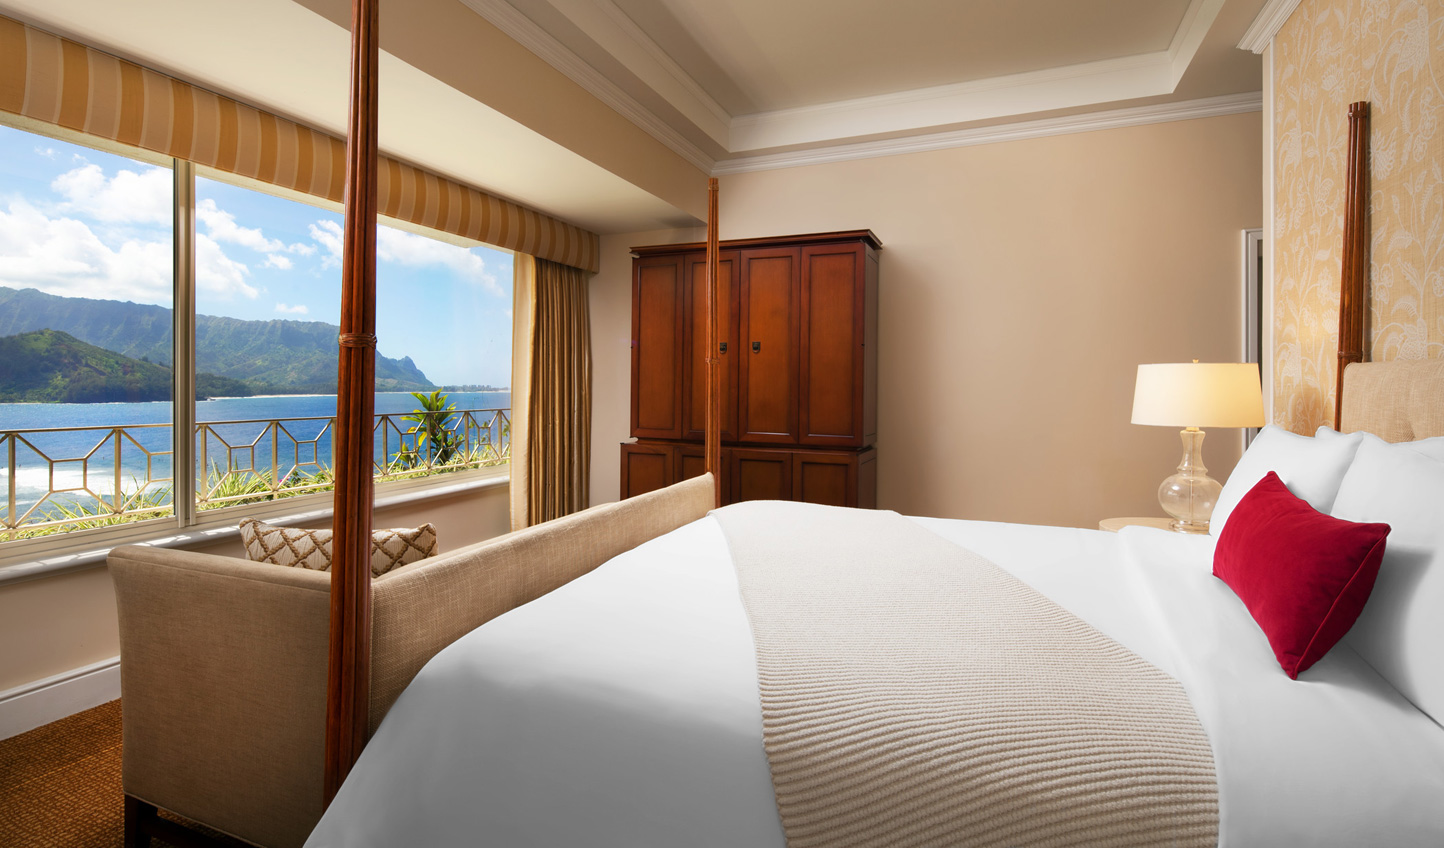 Wake up to azure waters and tropical views